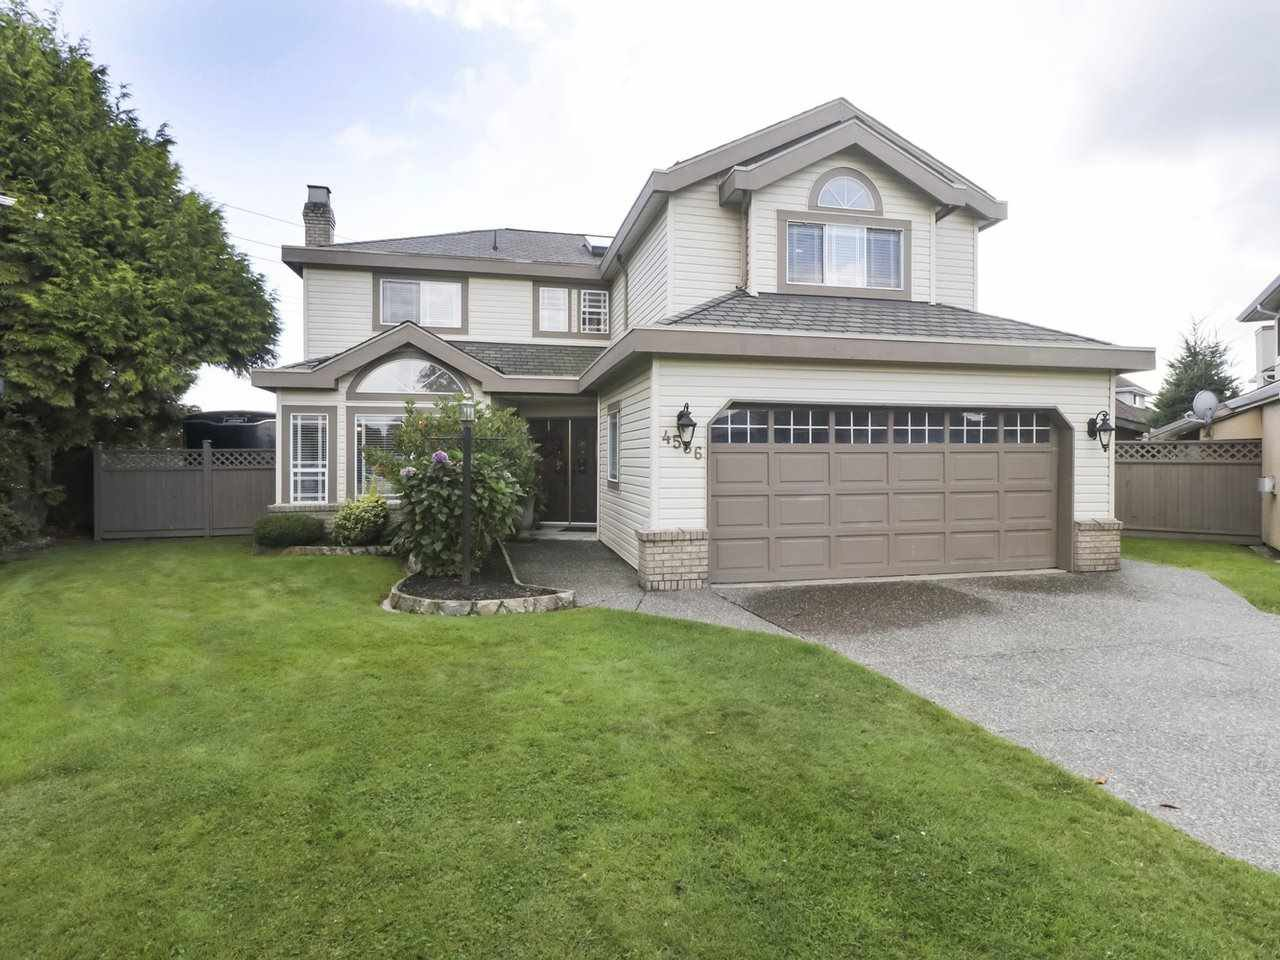 Main Photo: 4586 KENSINGTON Court in Delta: Holly House for sale (Ladner)  : MLS®# R2412506